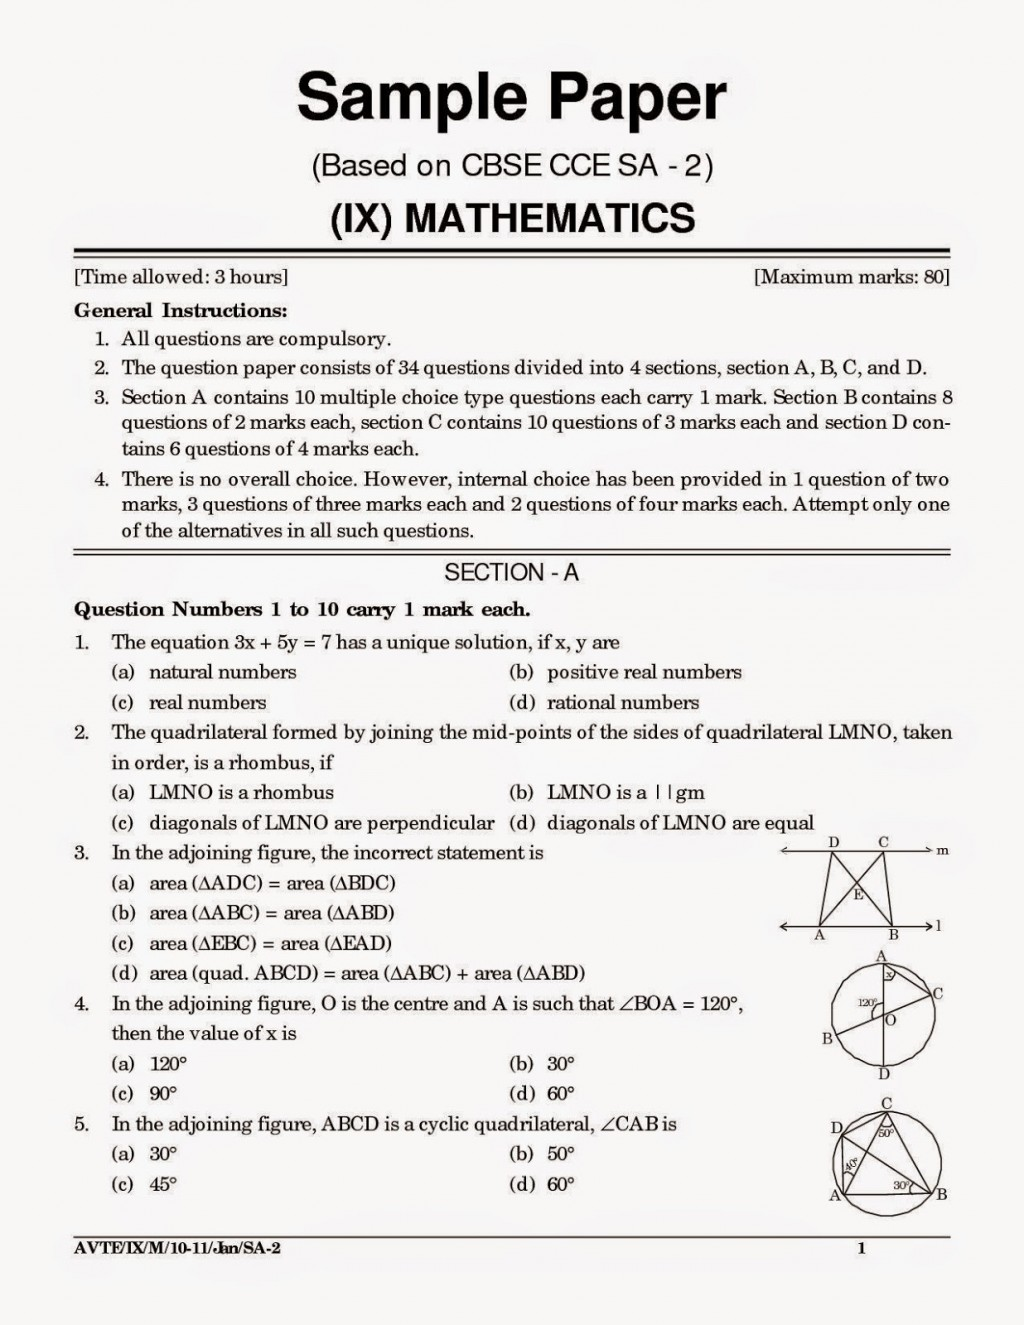 002 Essay Example Cbsesamplepapersforclass10mathematicsandscience Jpg Topics For Year Archaicawful 9 Questions Grade Olds Igcse Large